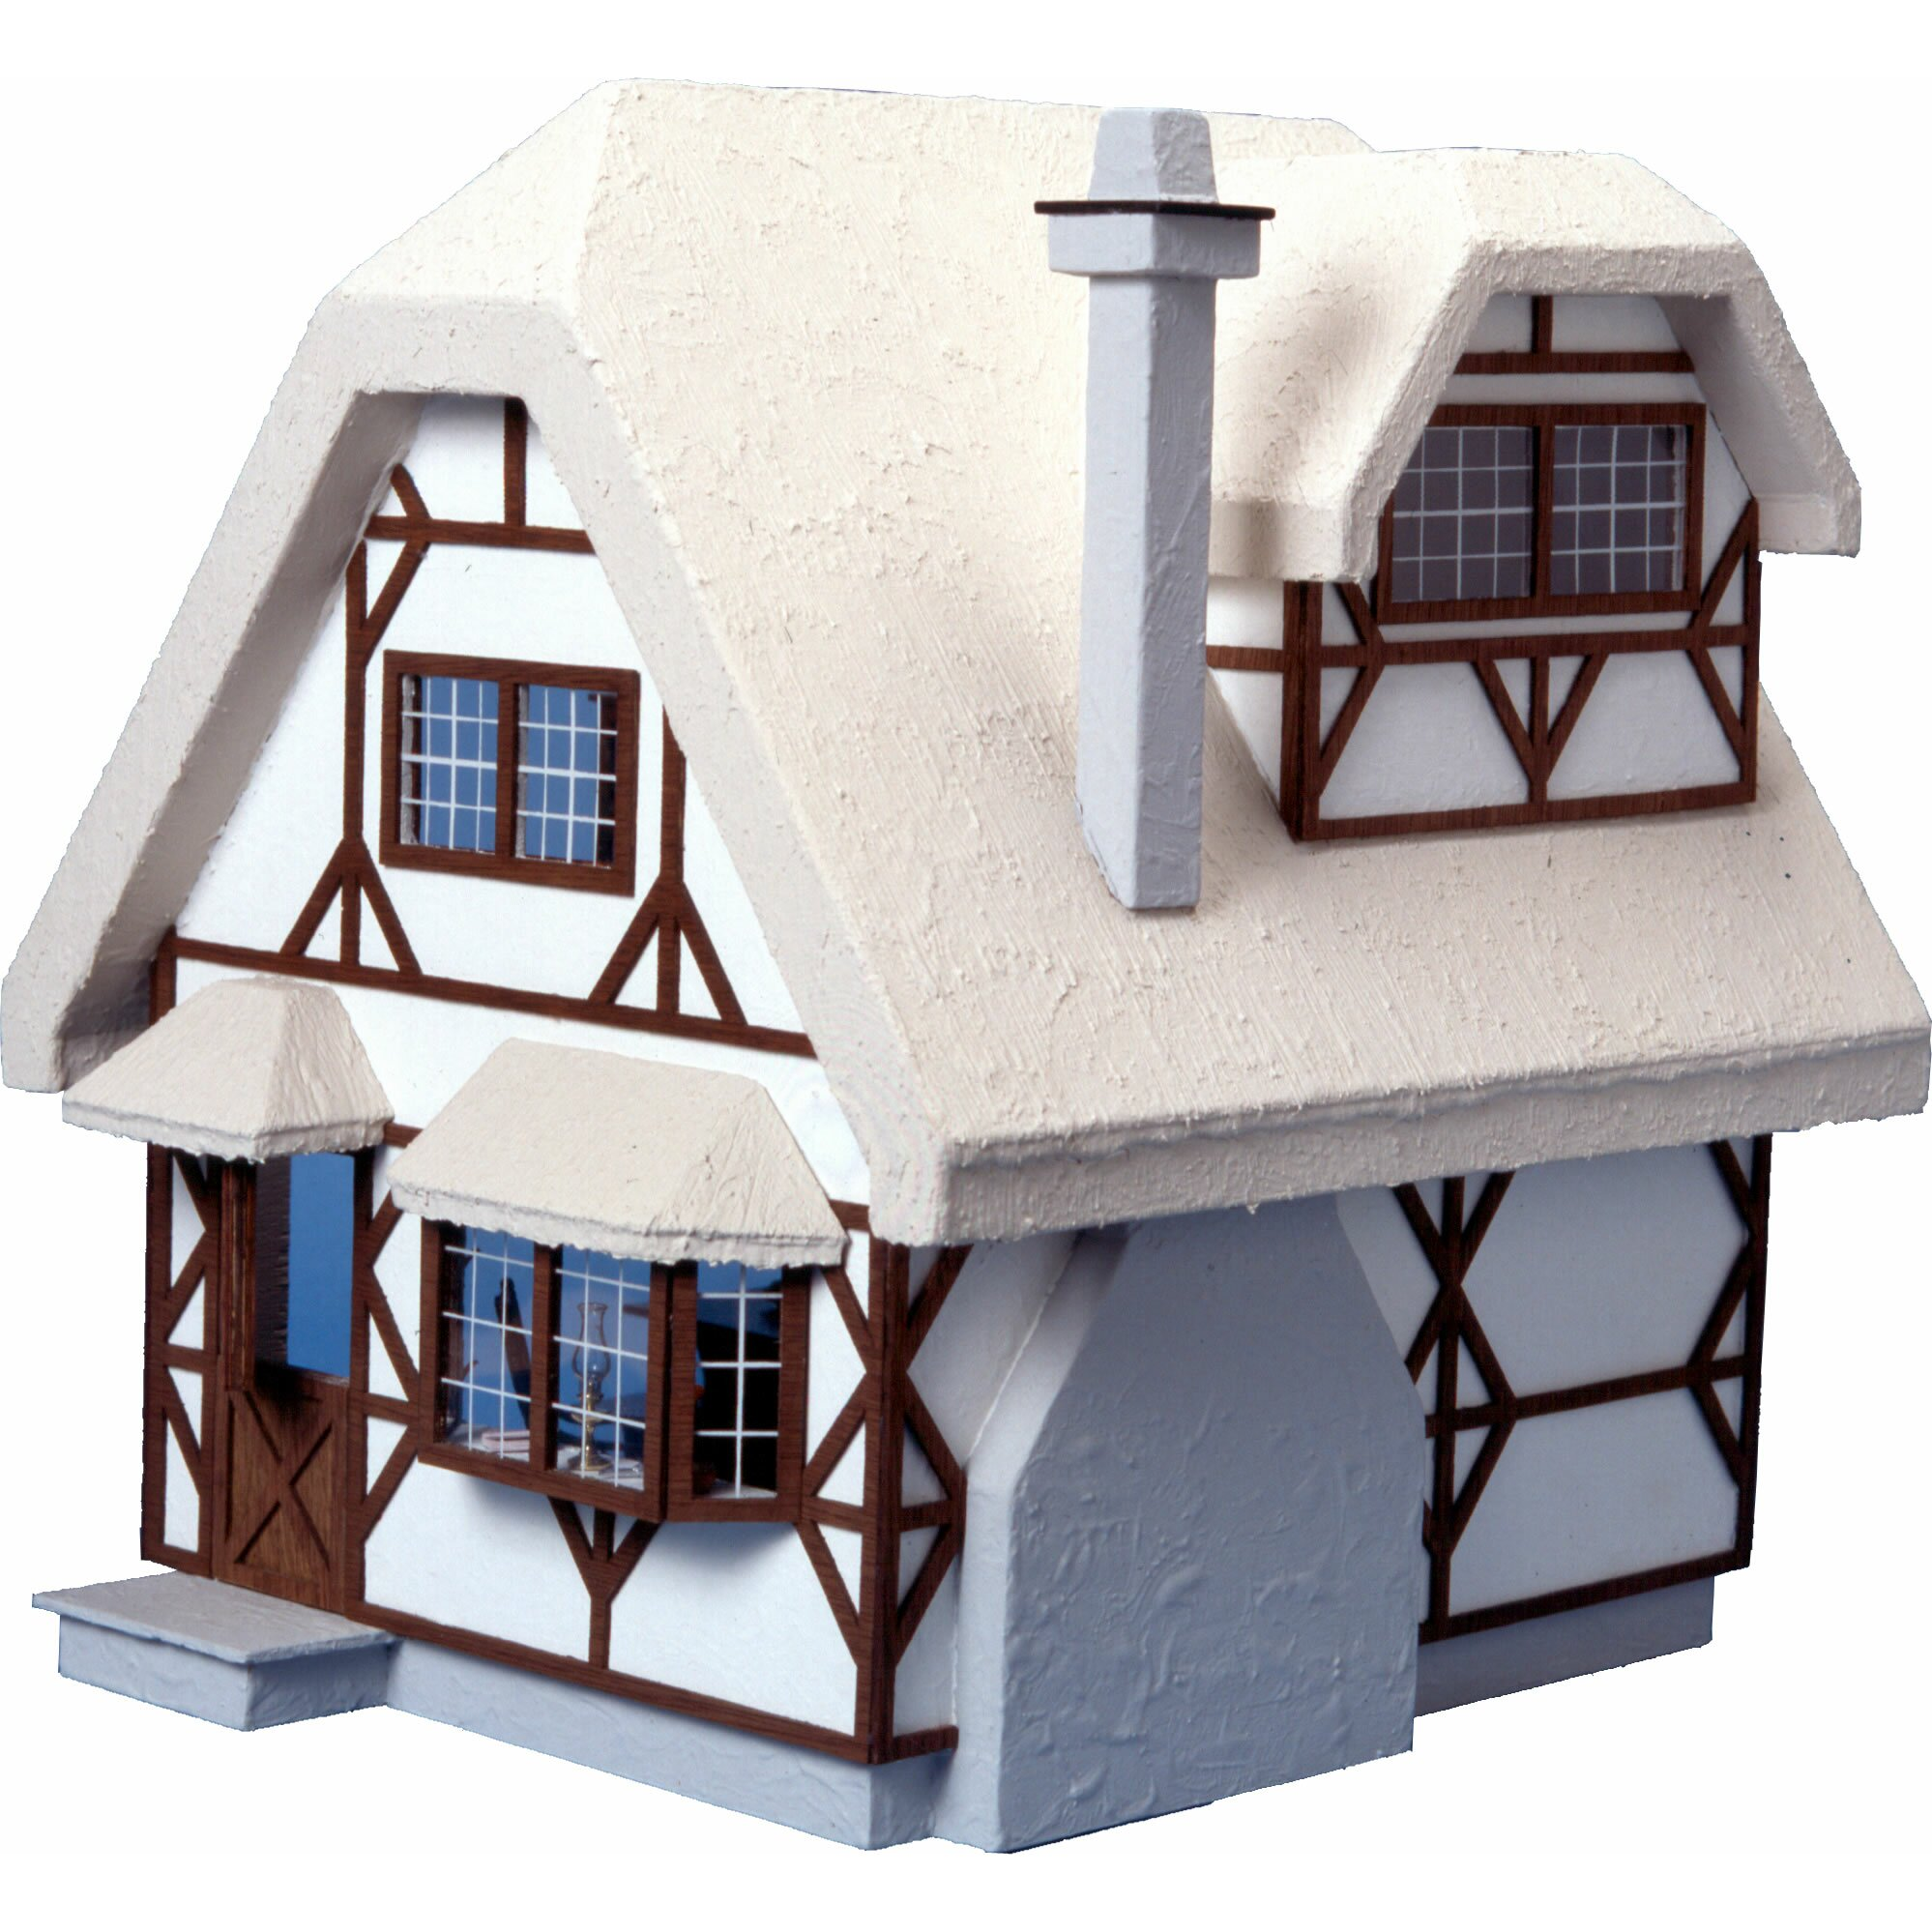 Greenleaf Dollhouses Aster Cottage Dollhouse & Reviews